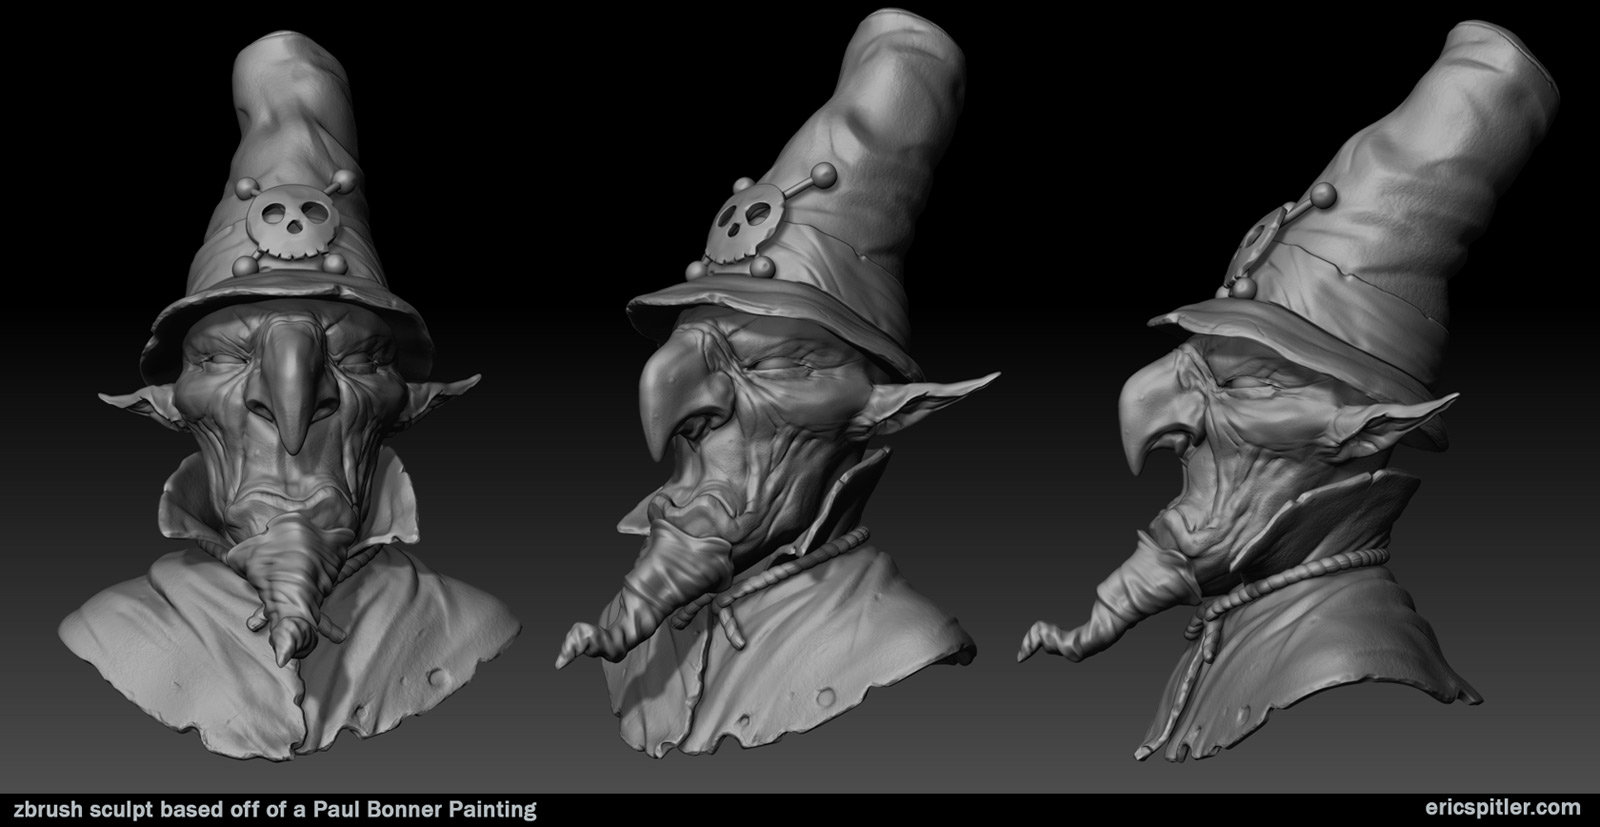 paul bonner 3d sculpt bw